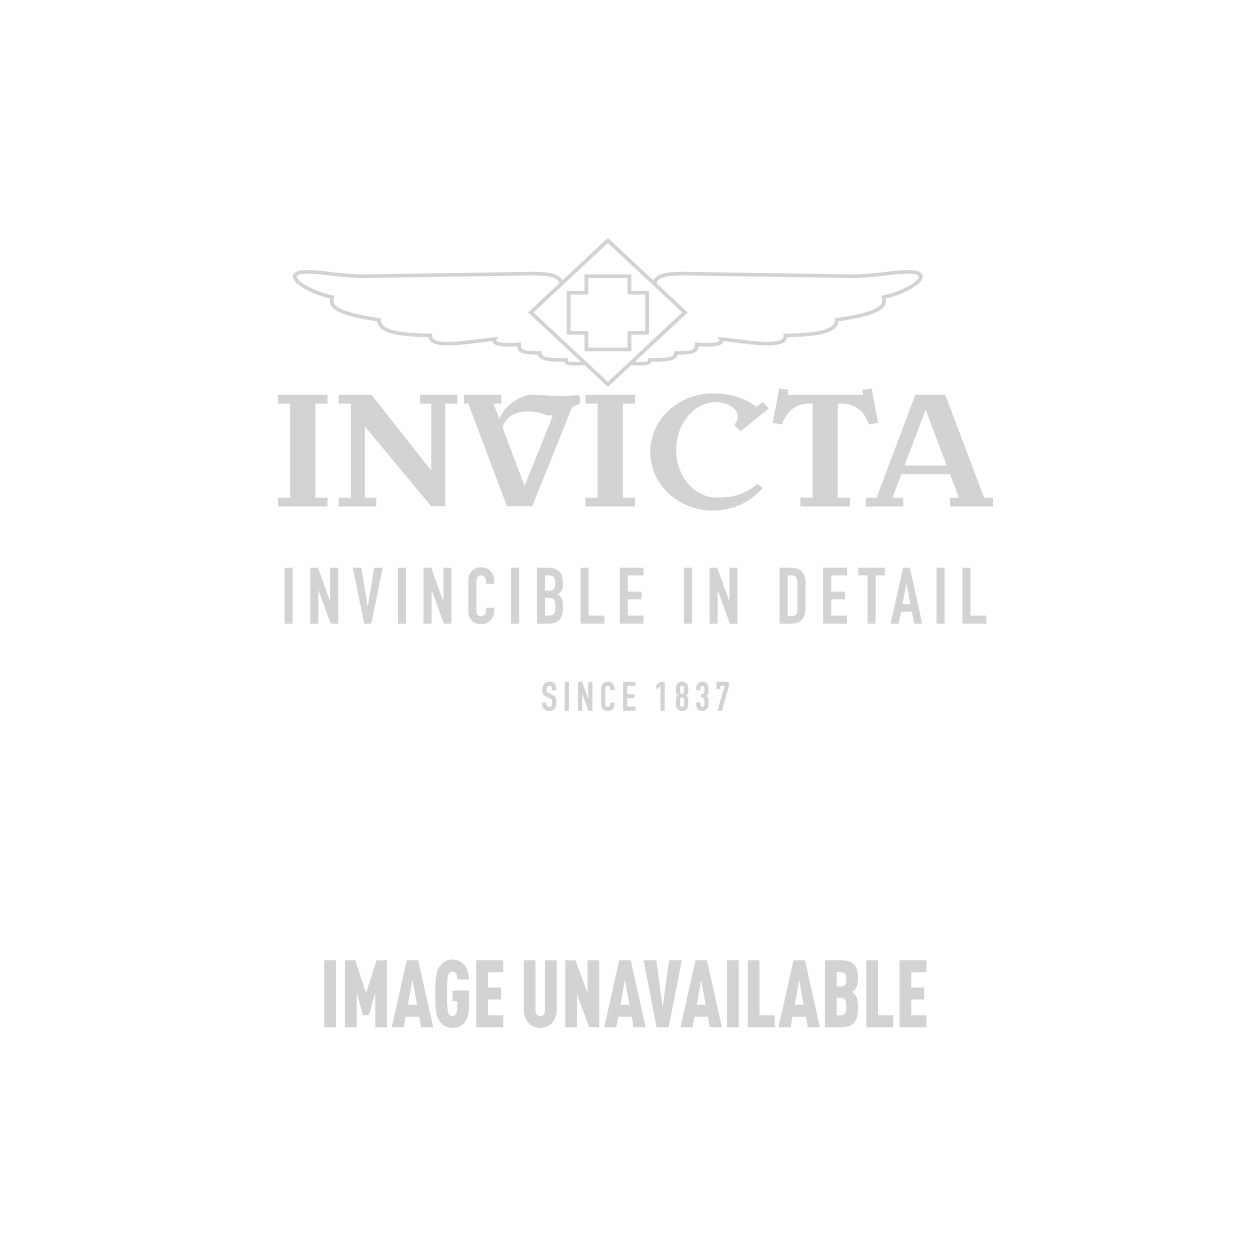 Invicta Lupah Swiss Movement Quartz Watch - Stainless Steel case with Black tone Leather band - Model 16058